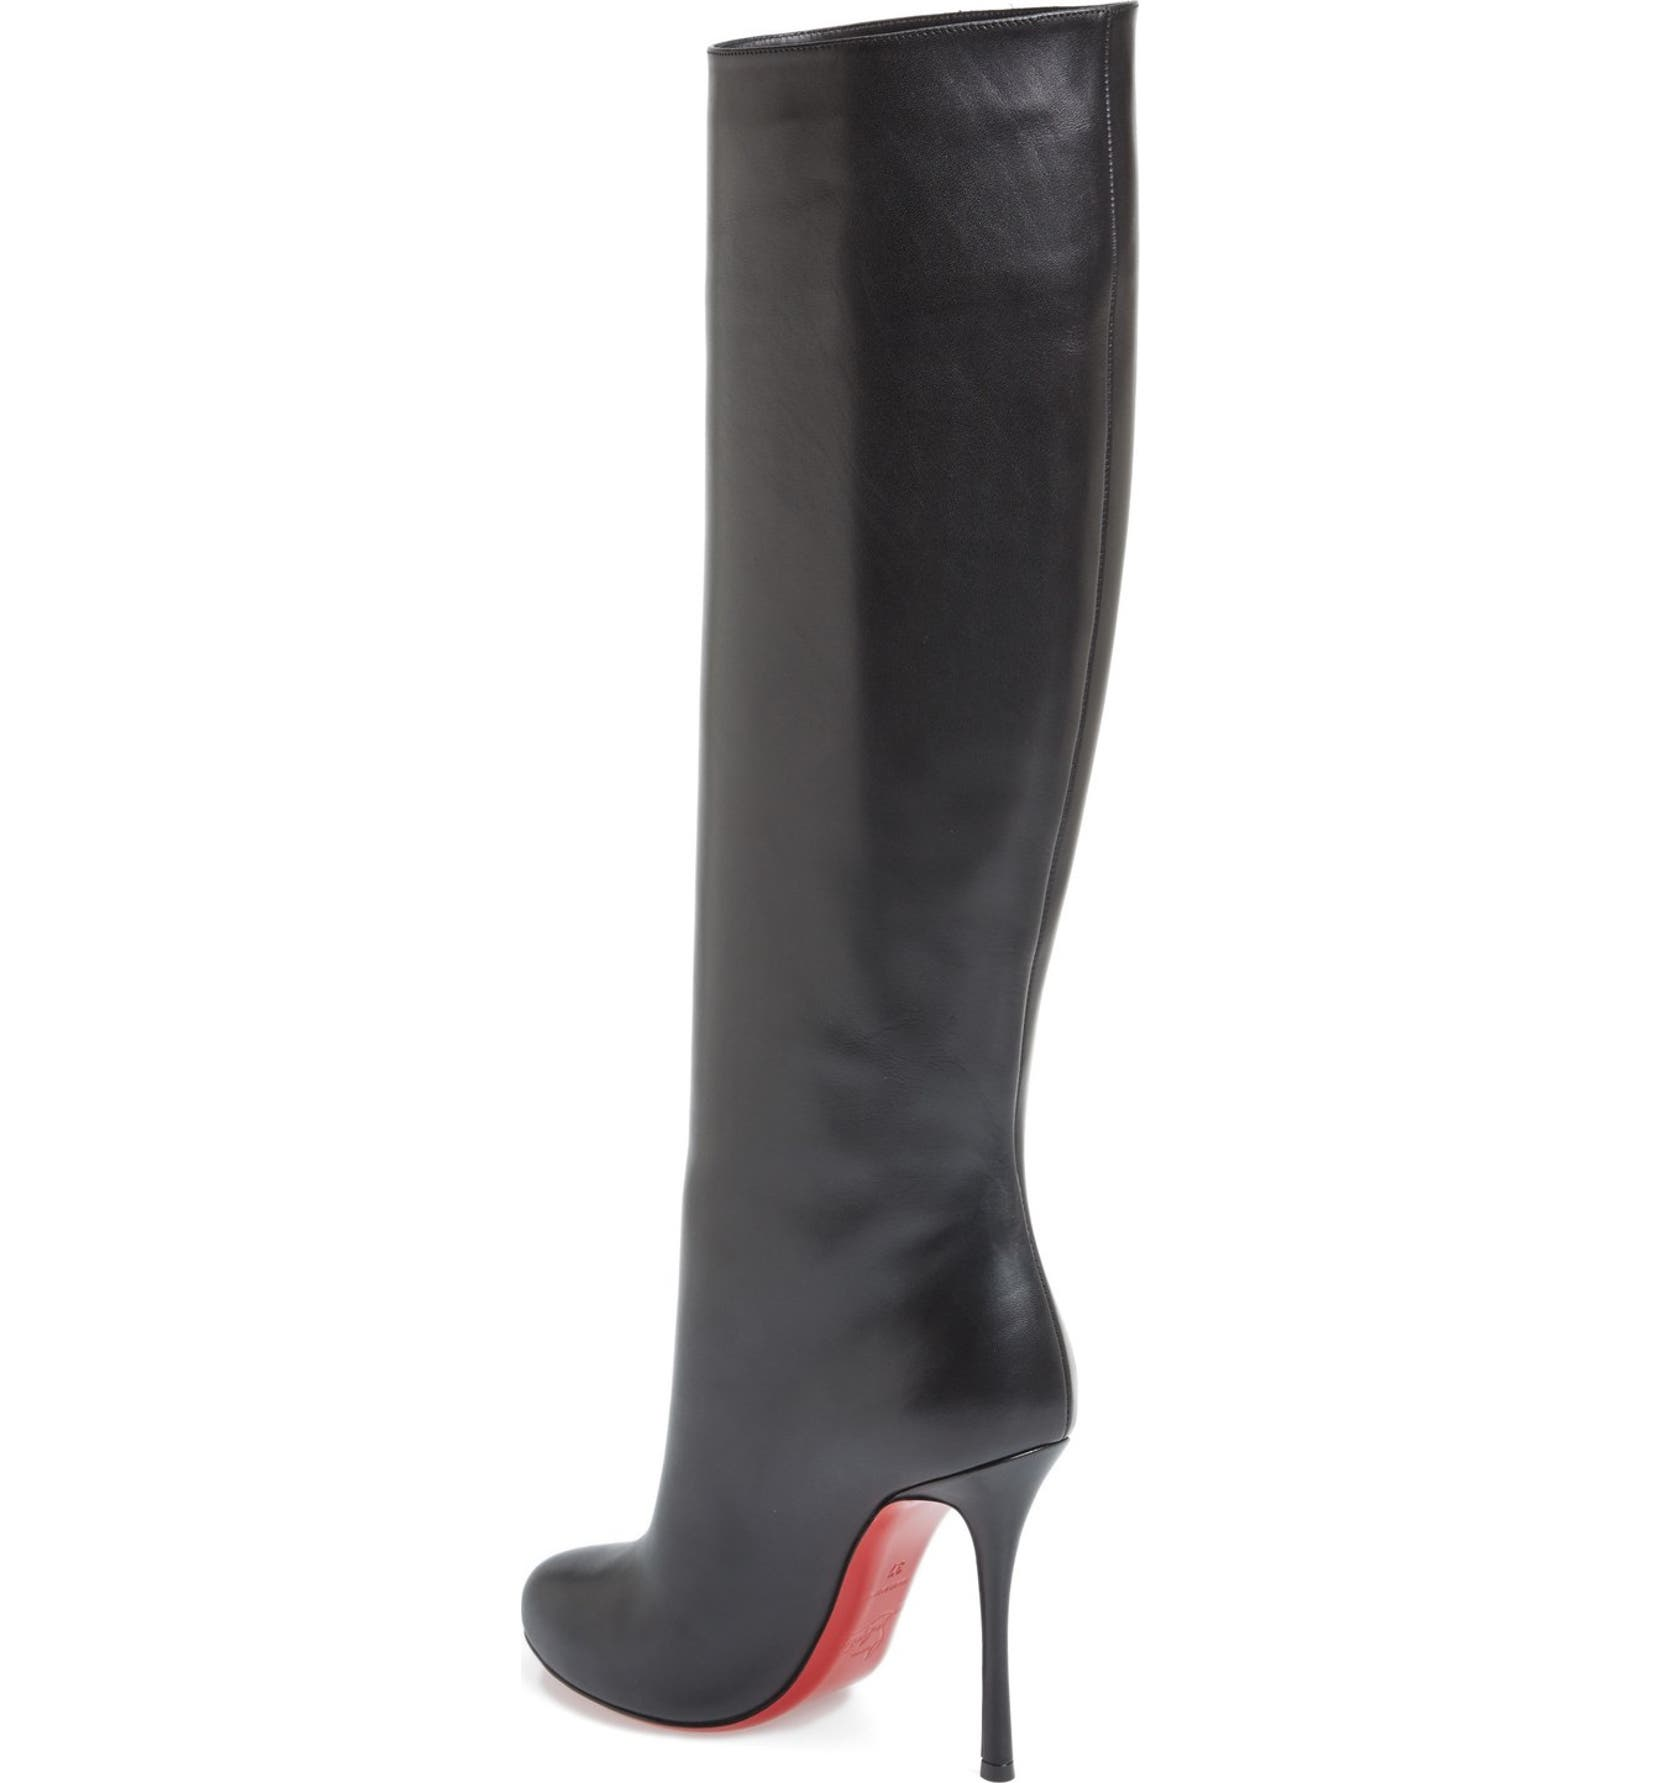 separation shoes d8660 63481 'Vitish' Knee High Boot